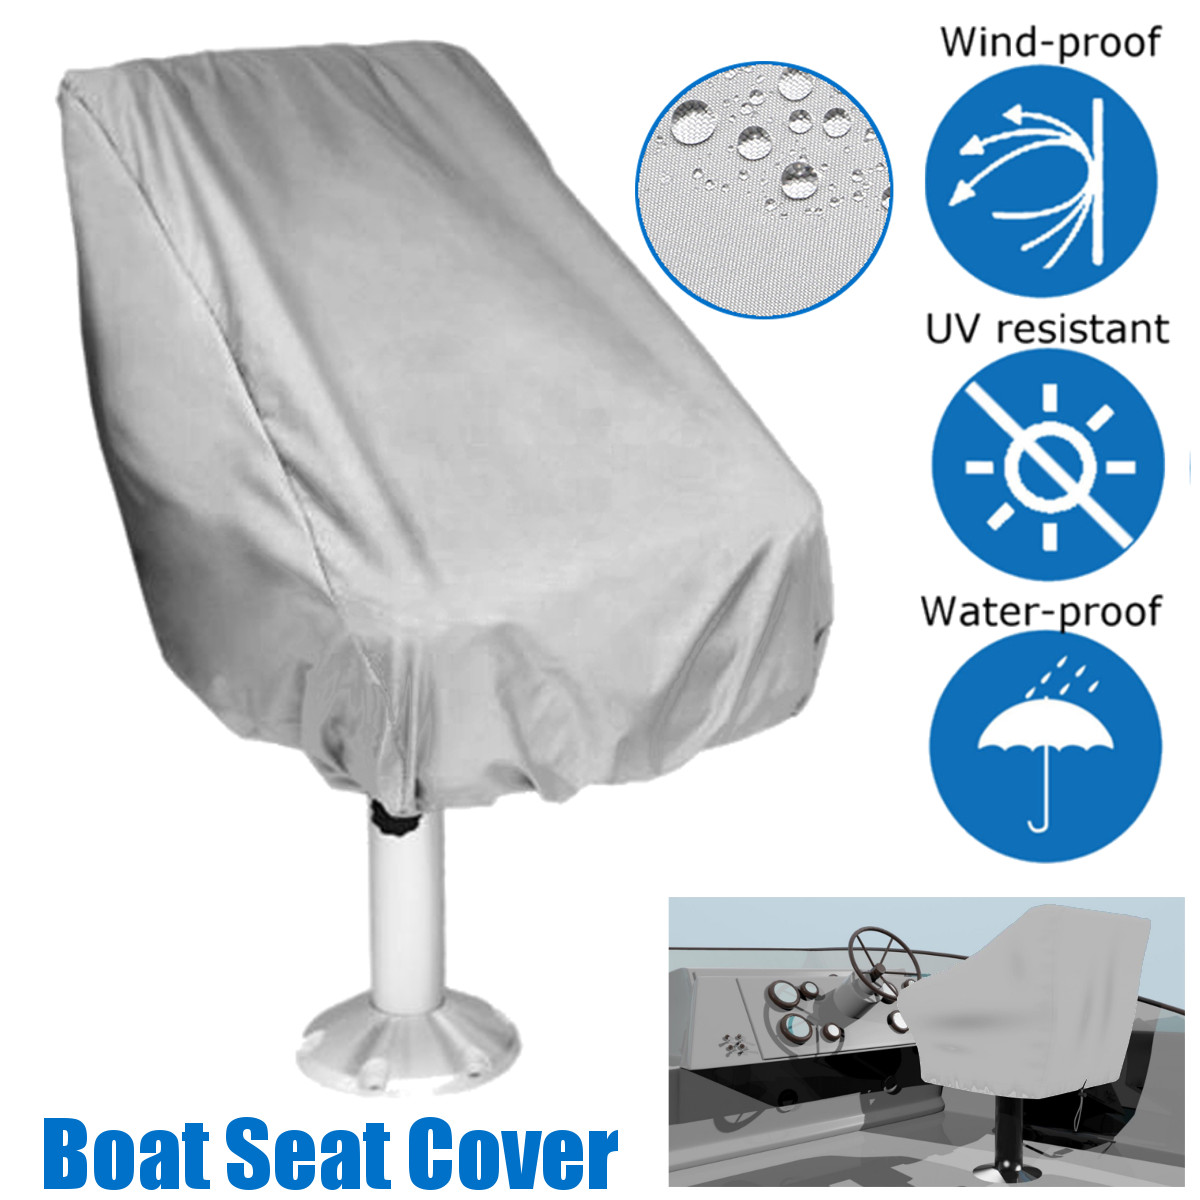 Initiative 56*61*64cm Boat Seat Cover Dust Waterproof Seat Cover Elastic Closure Outdoor Yacht Ship Lift Rotate Chair/table Furniture Cover Boat Parts & Accessories